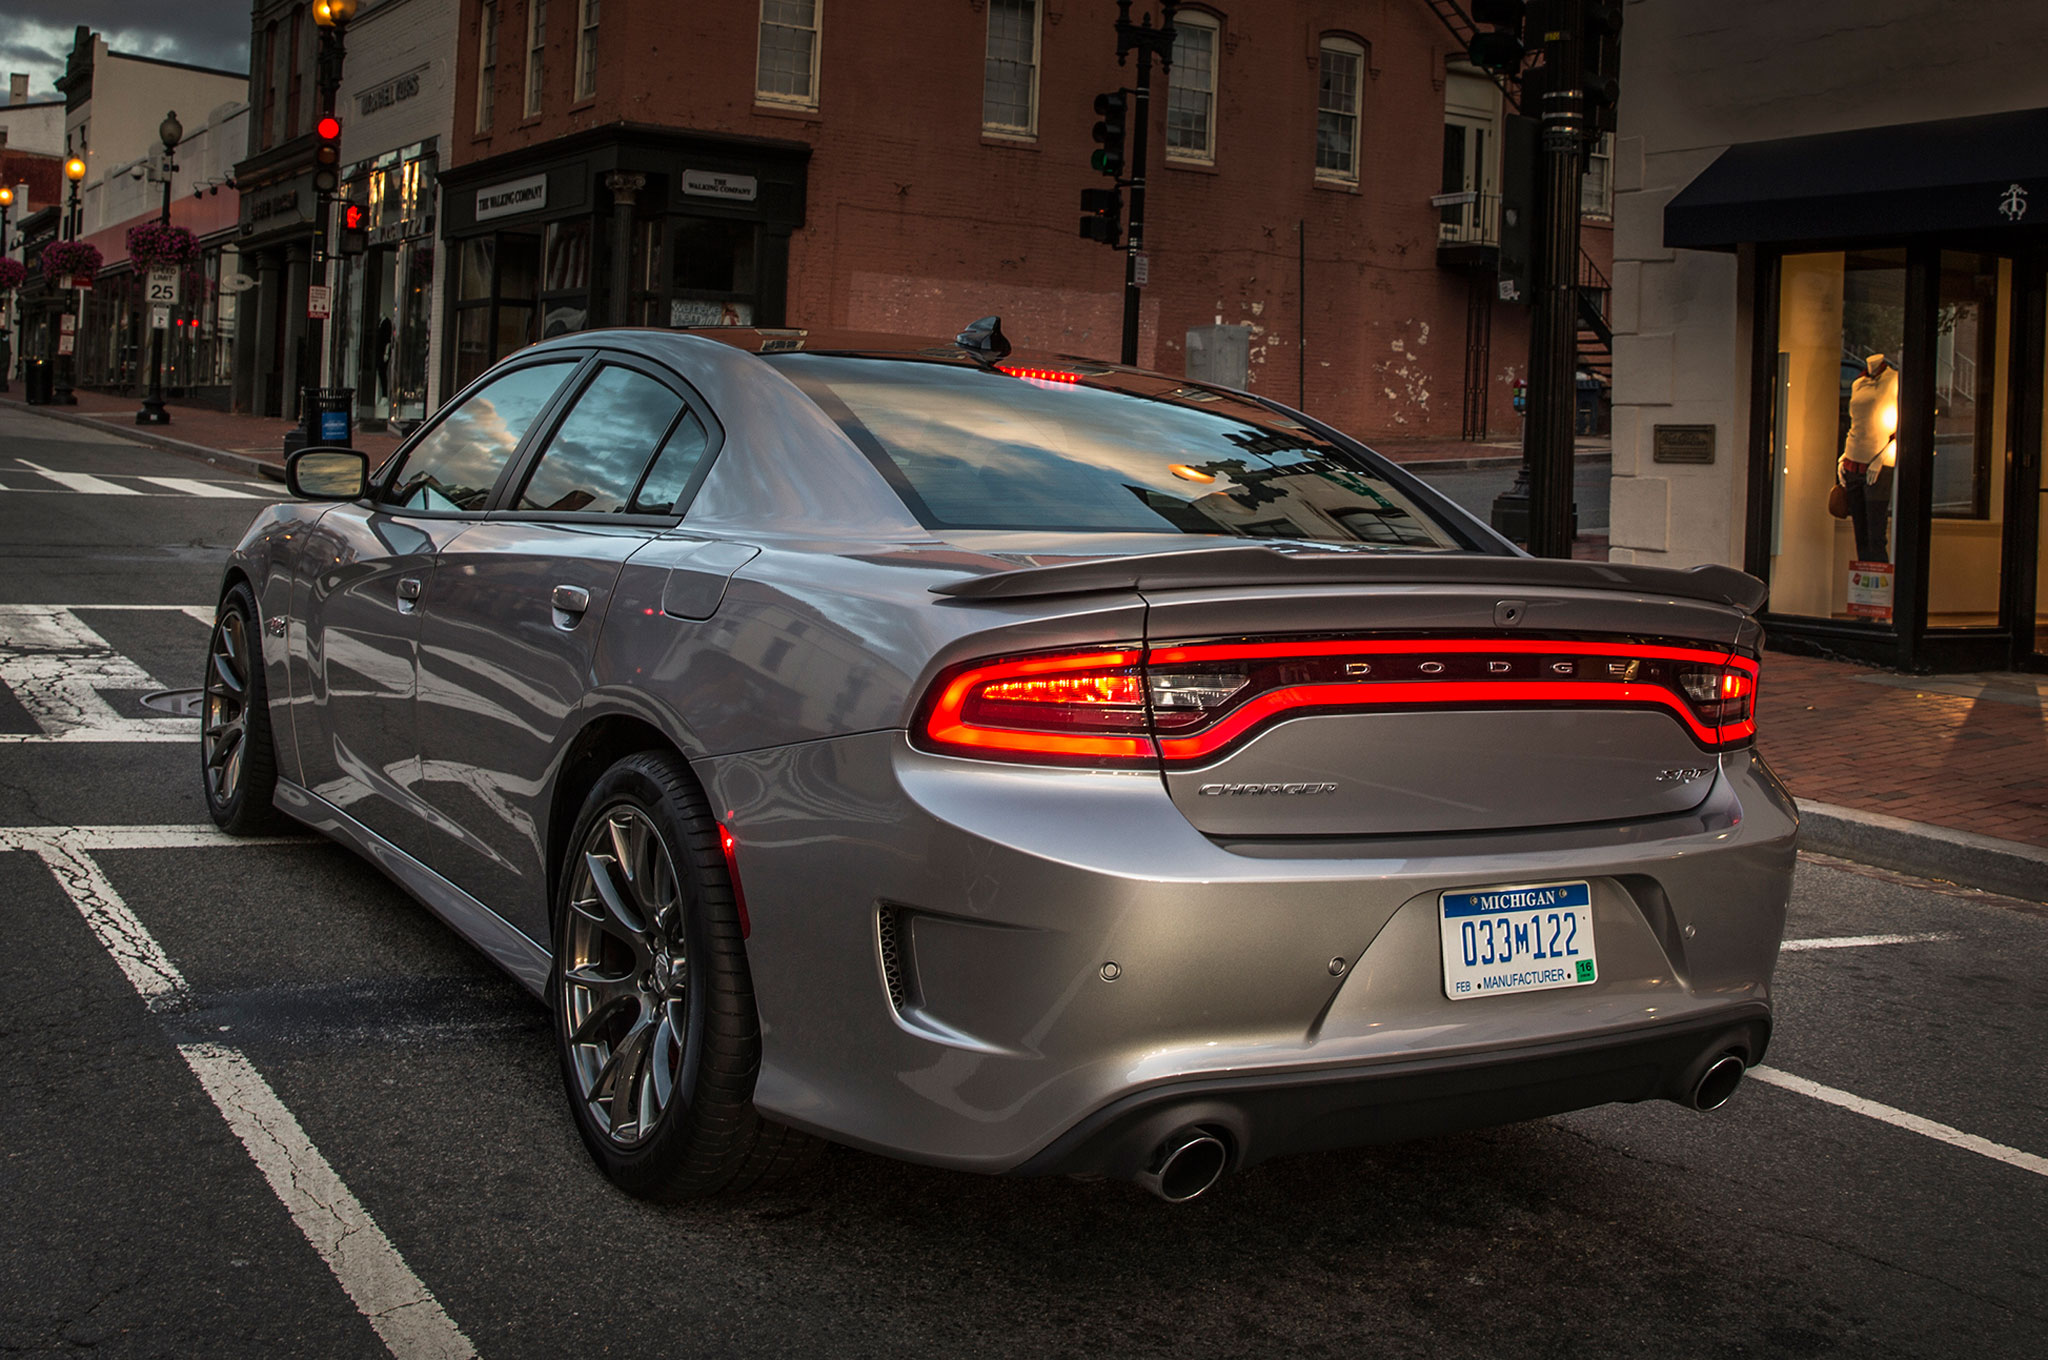 2015 Dodge Charger Pursuit Announced, Keeps Five-Speed Auto